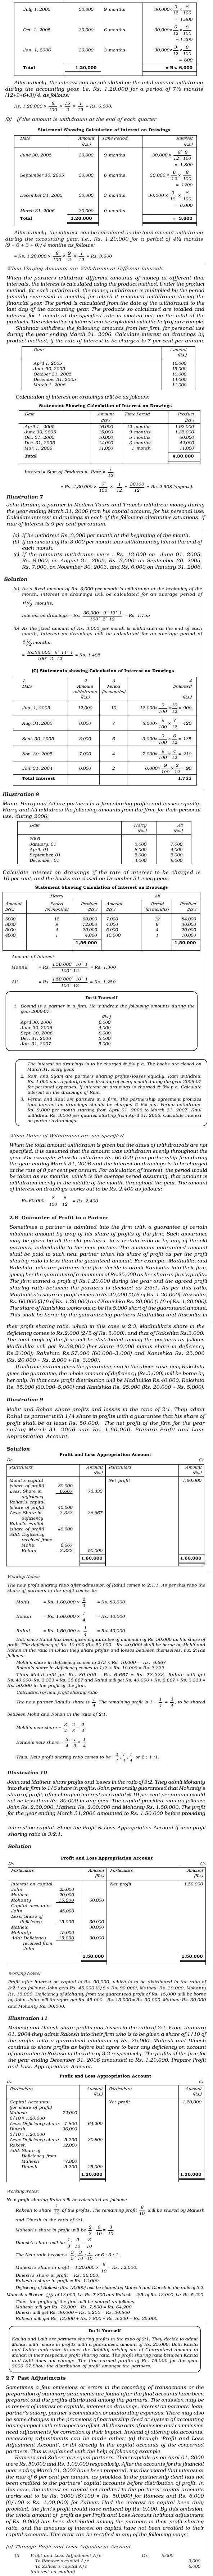 NCERT Class XII Accountancy I Chapter 2 - Accounting for Partnership : Basic Concepts